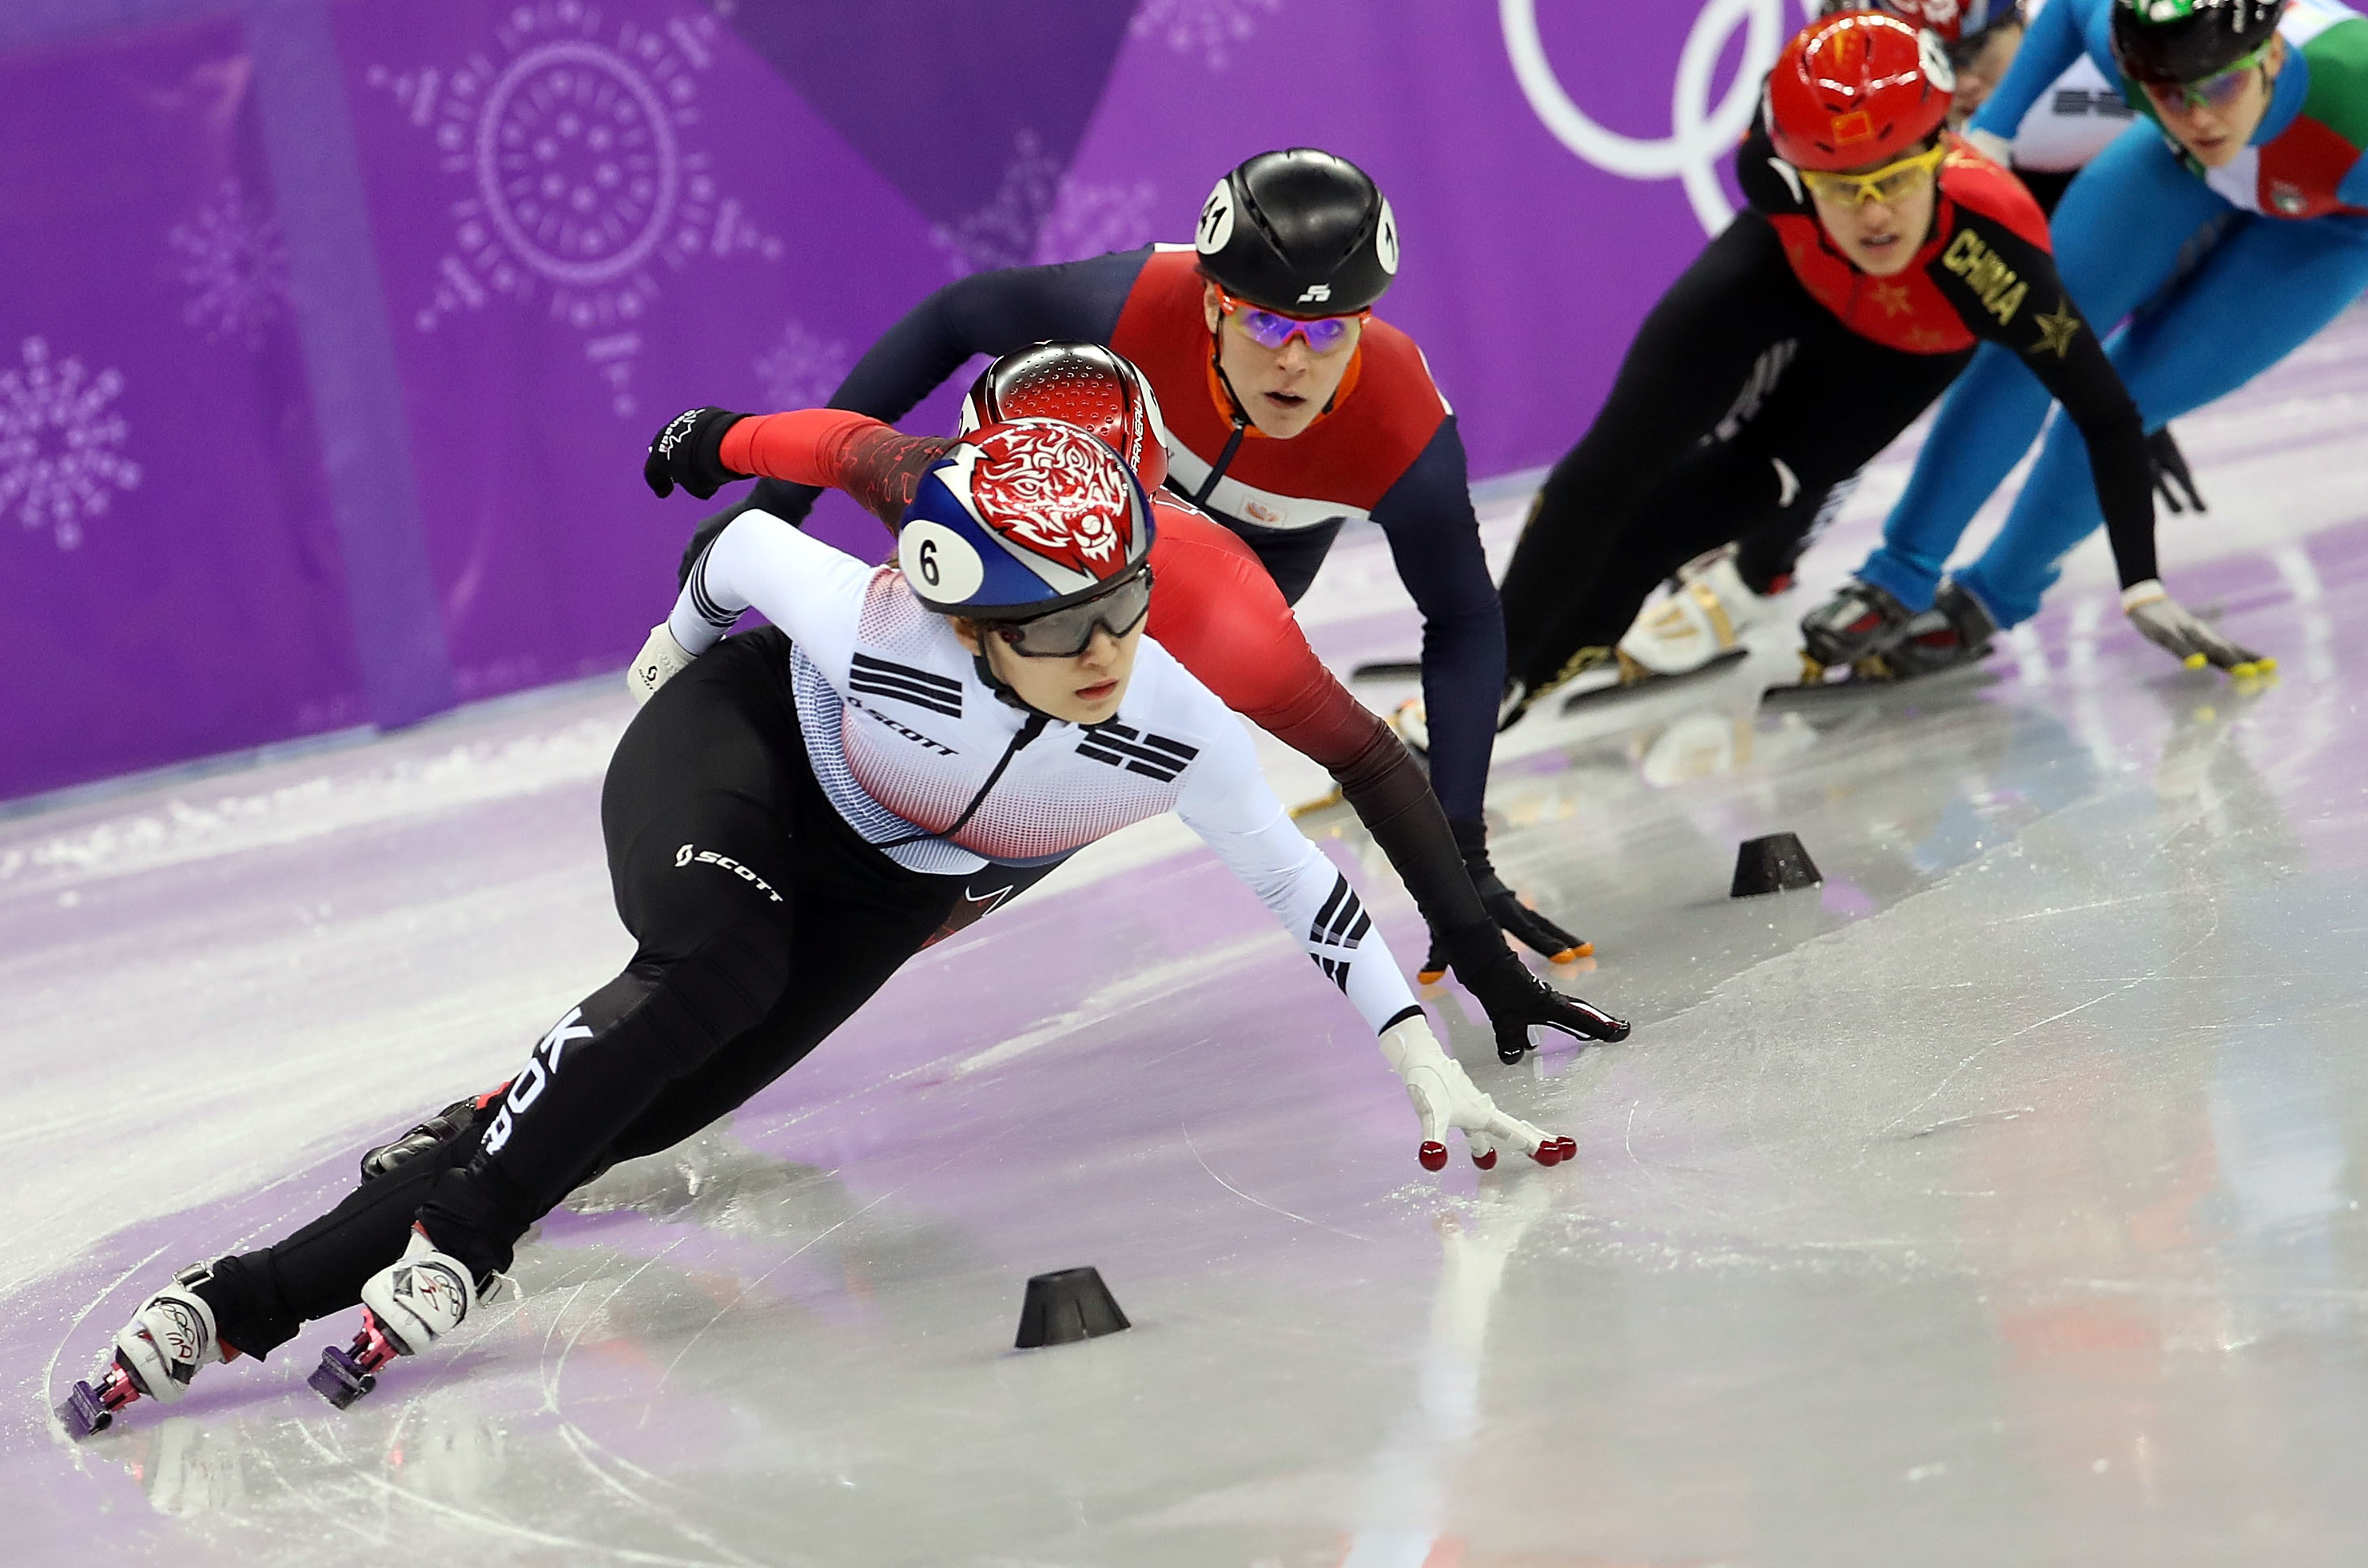 Skaters compete in the 1,500-meter women's short track. The ice for short track speedskating is thicker and warmer than long track ice. Hockey ice is warmer still.